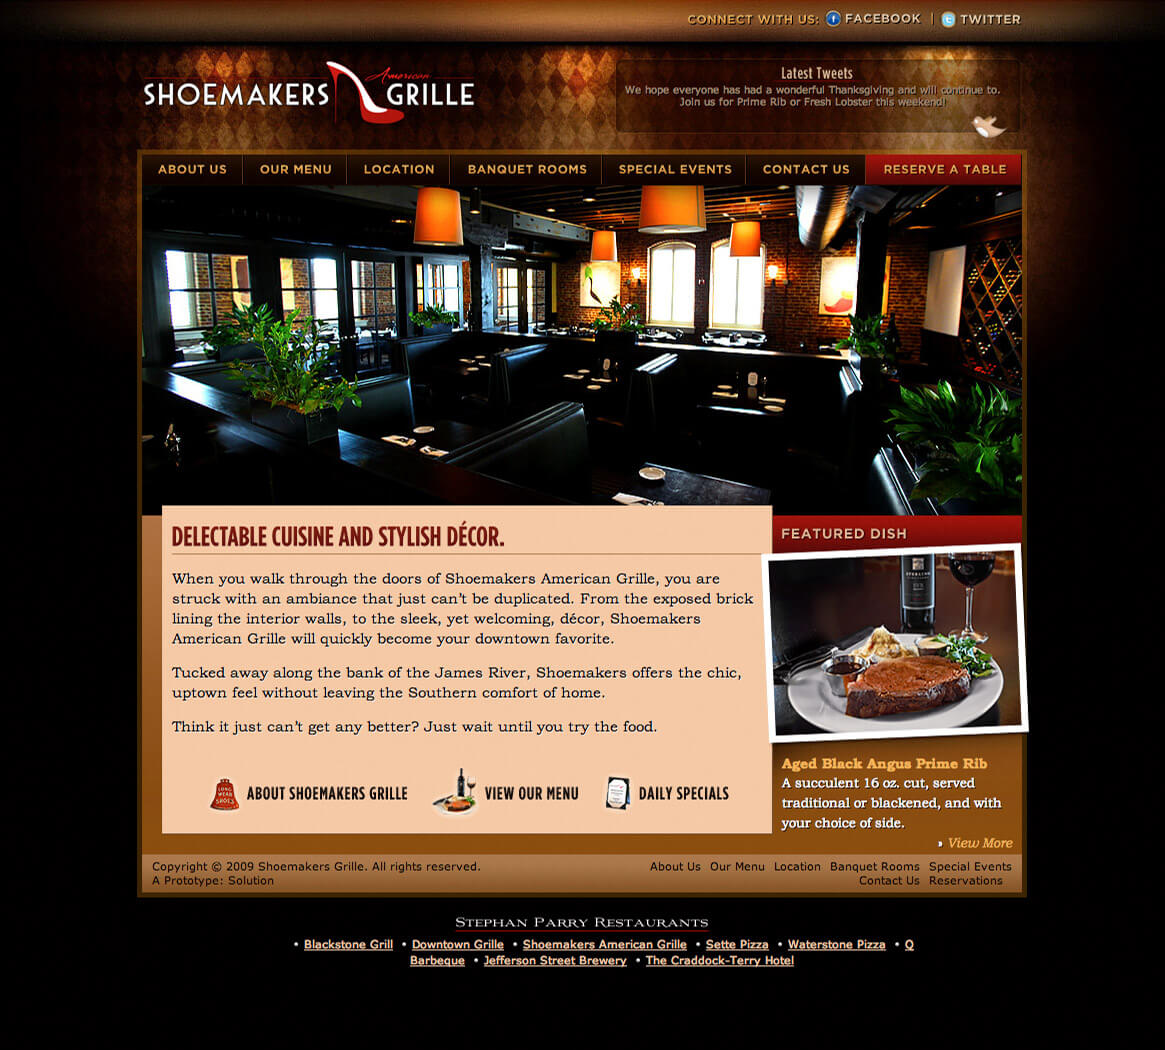 Shoemakers American Grille